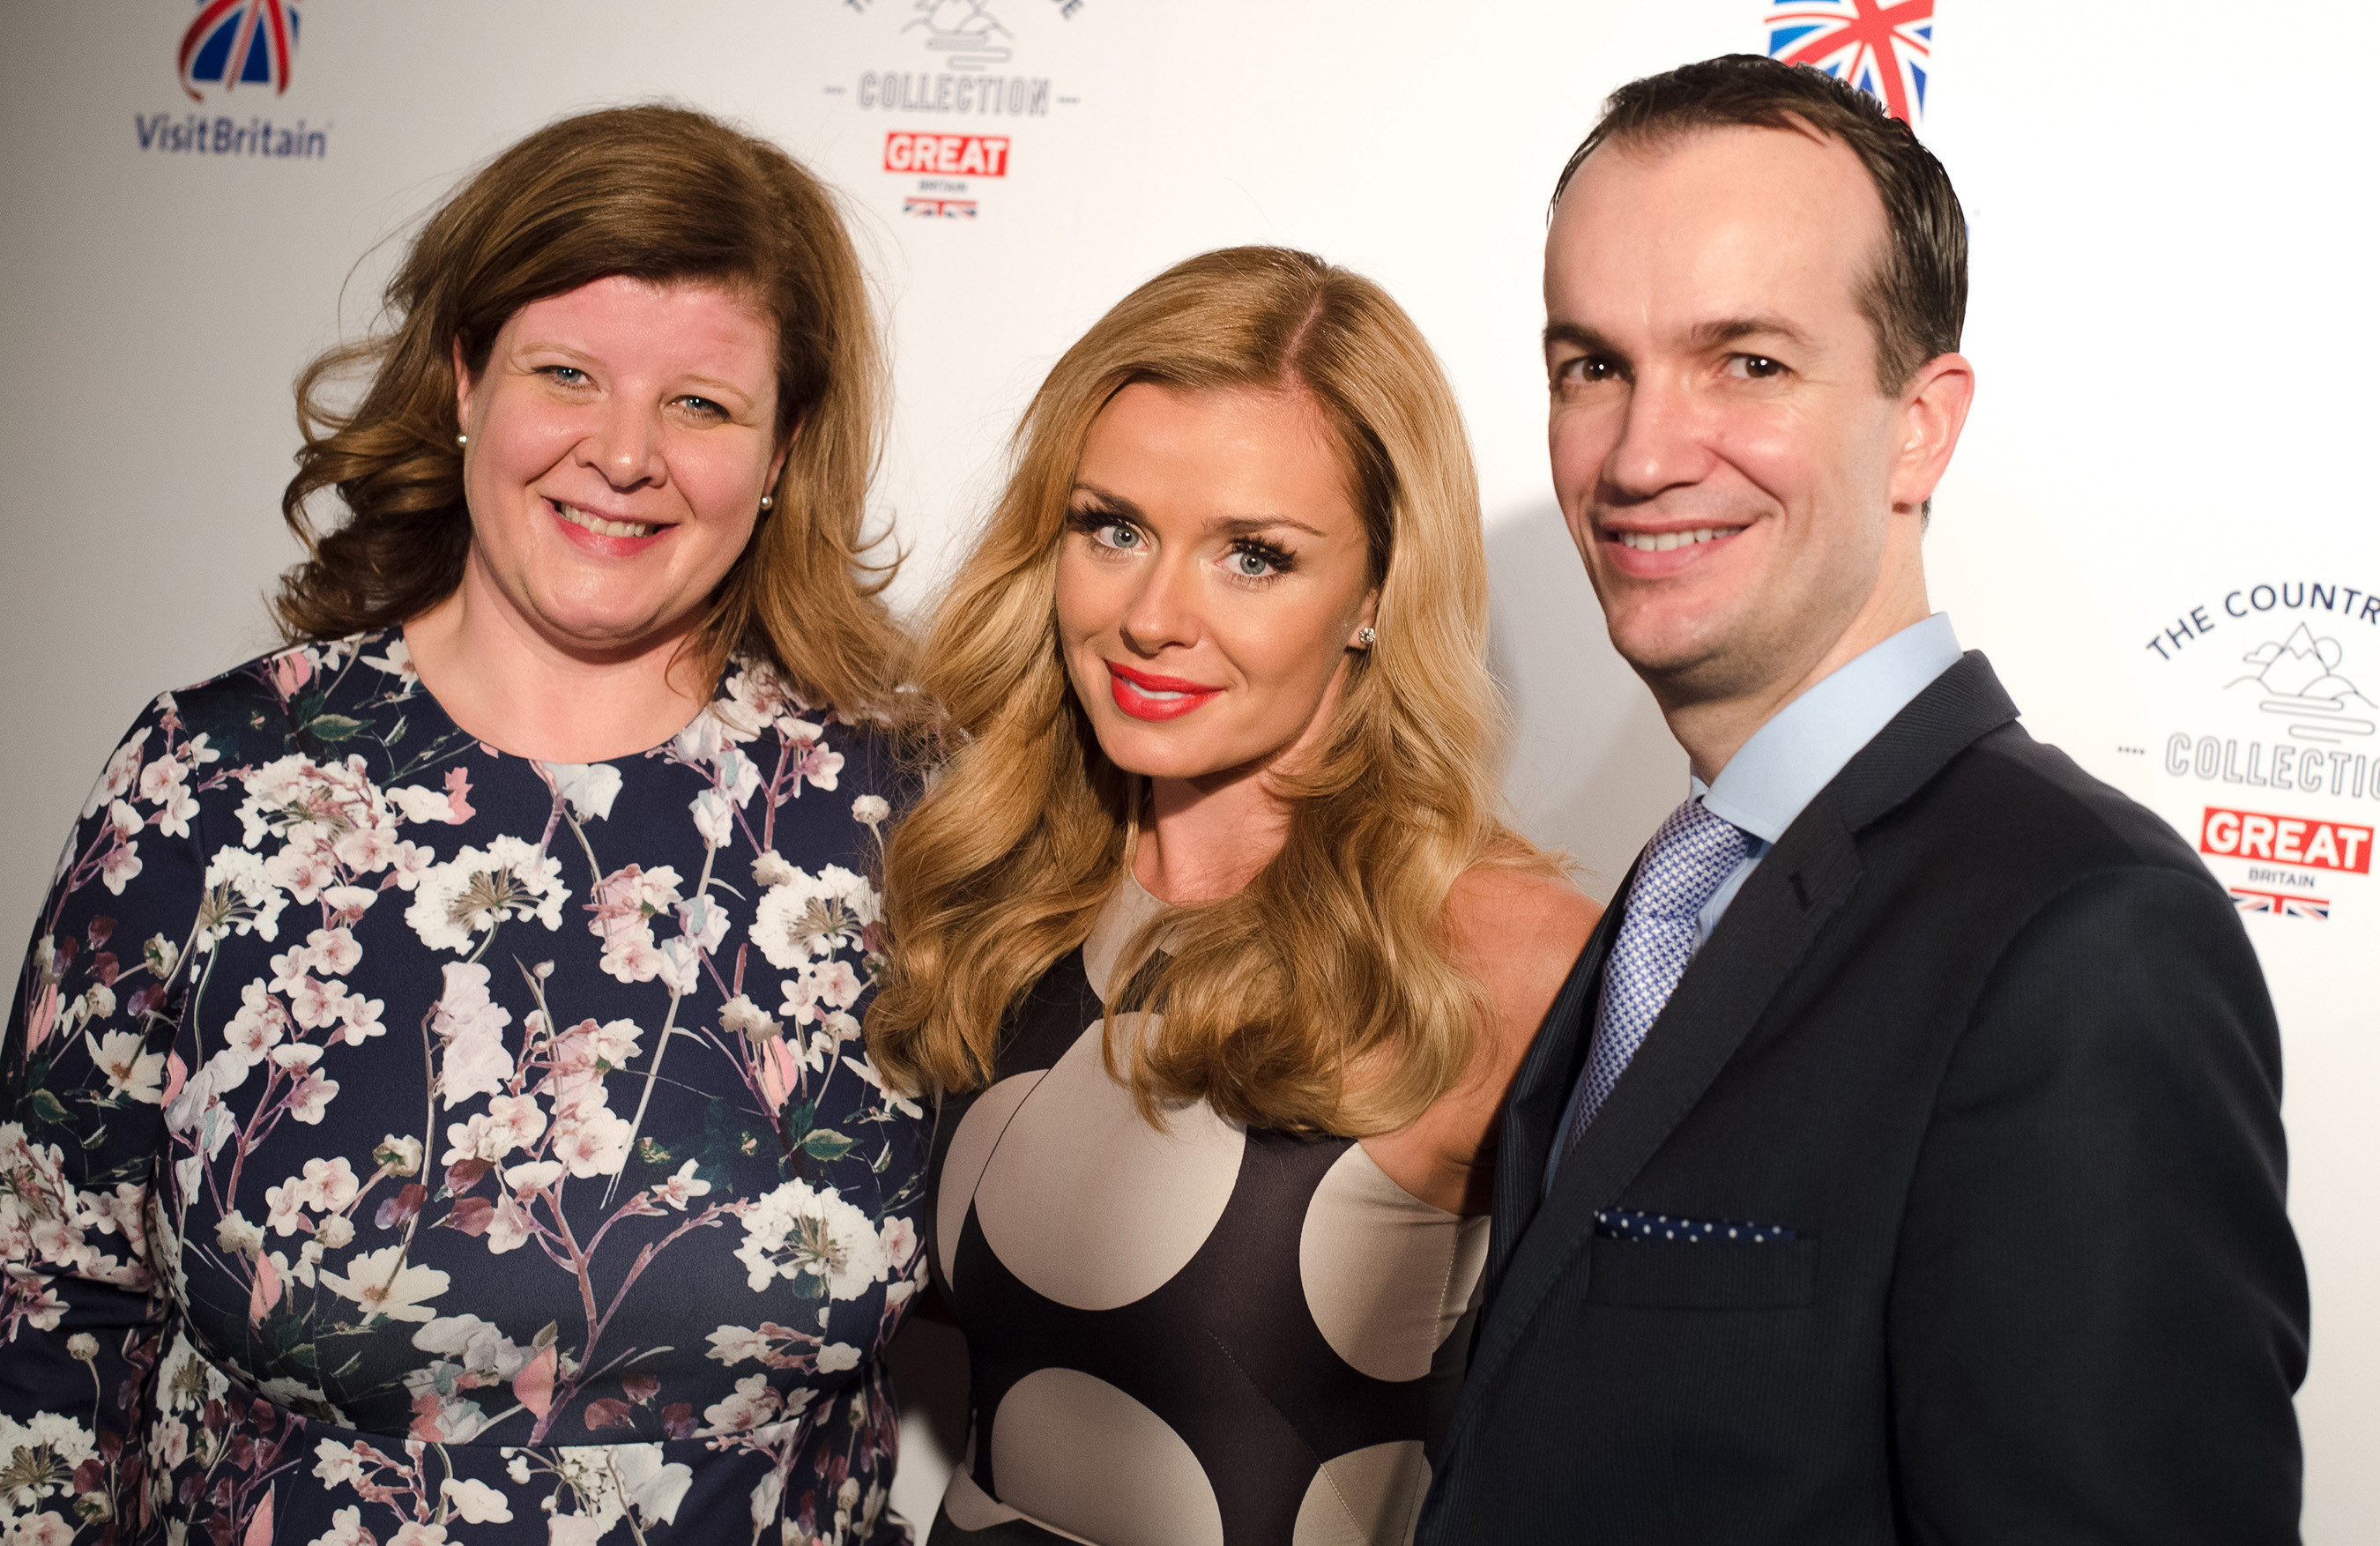 GREAT Britain Campaign ambassador Katherine Jenkins, OBE, launches VisitBritain's new campaign The Countryside Collection with Her Majesty's Consul General Danny Lopez and VisitBritain Vice President, North America, Karen Clarkson in New York City.